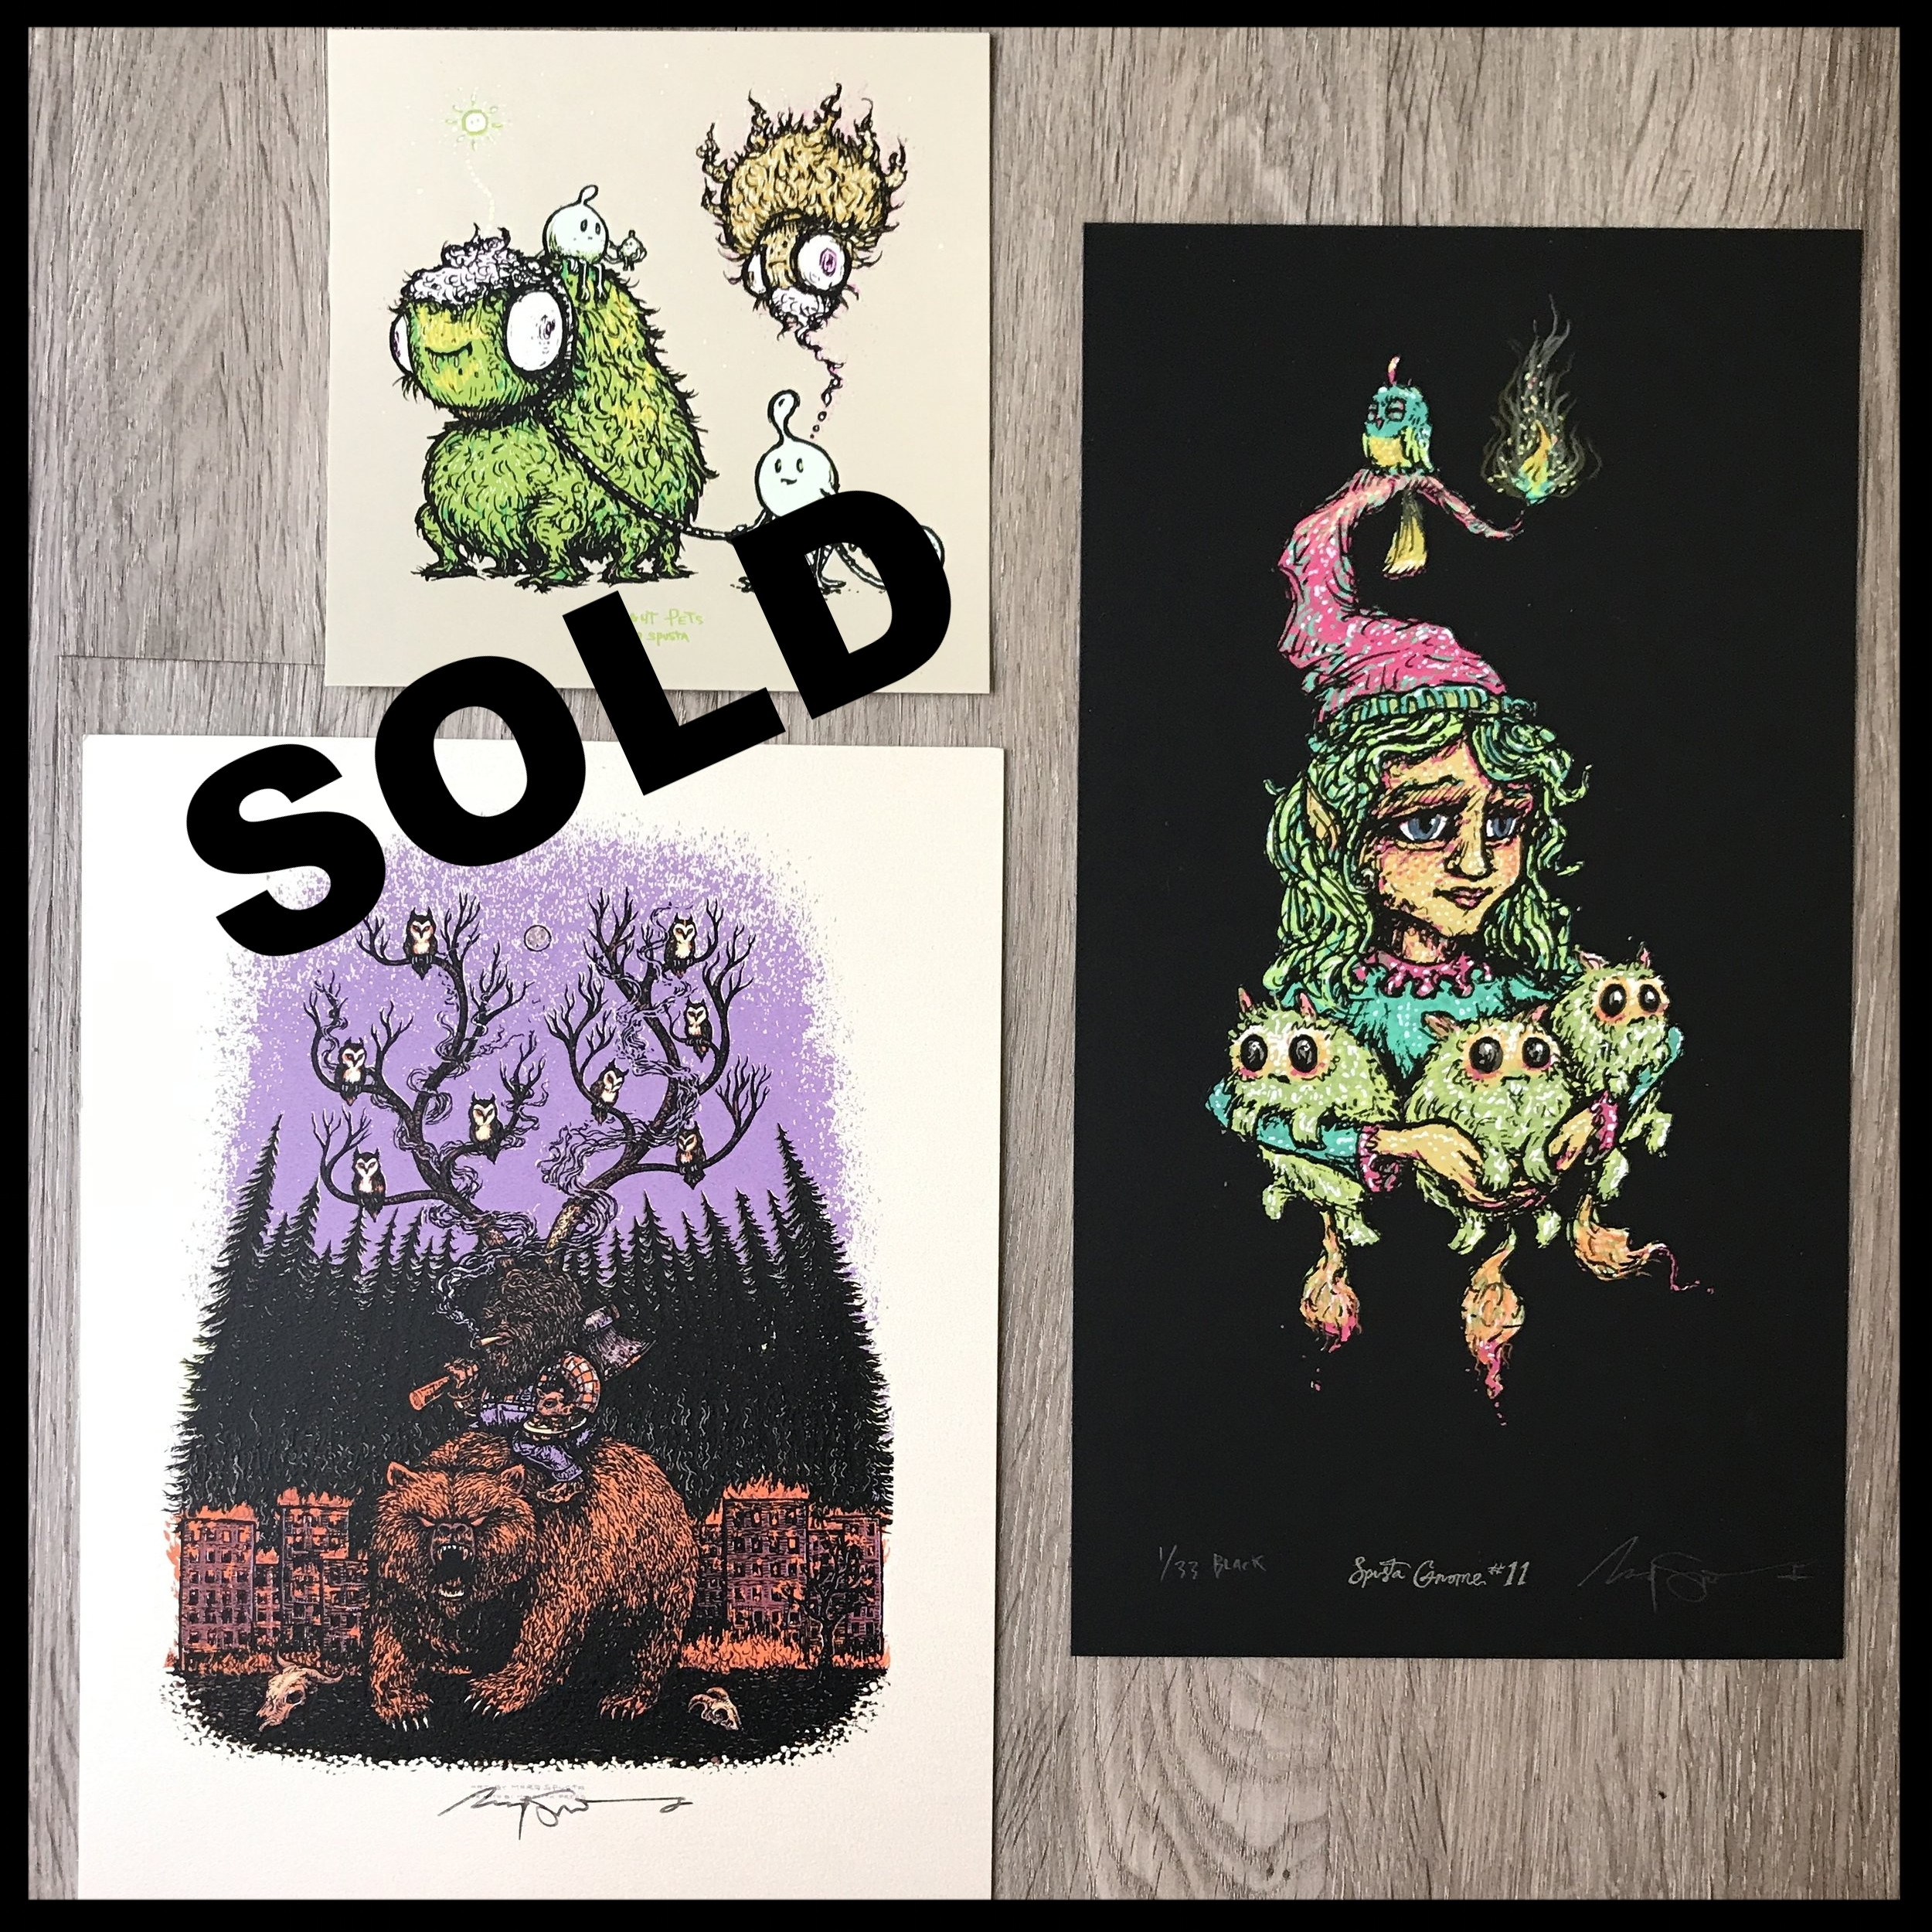 "$200 - PACK Q - Gnome 11 Lightly embellished Full Size 6"" x 11"" + Grizzly Adamz Handbill + Thought Pets 5"" x 5"""